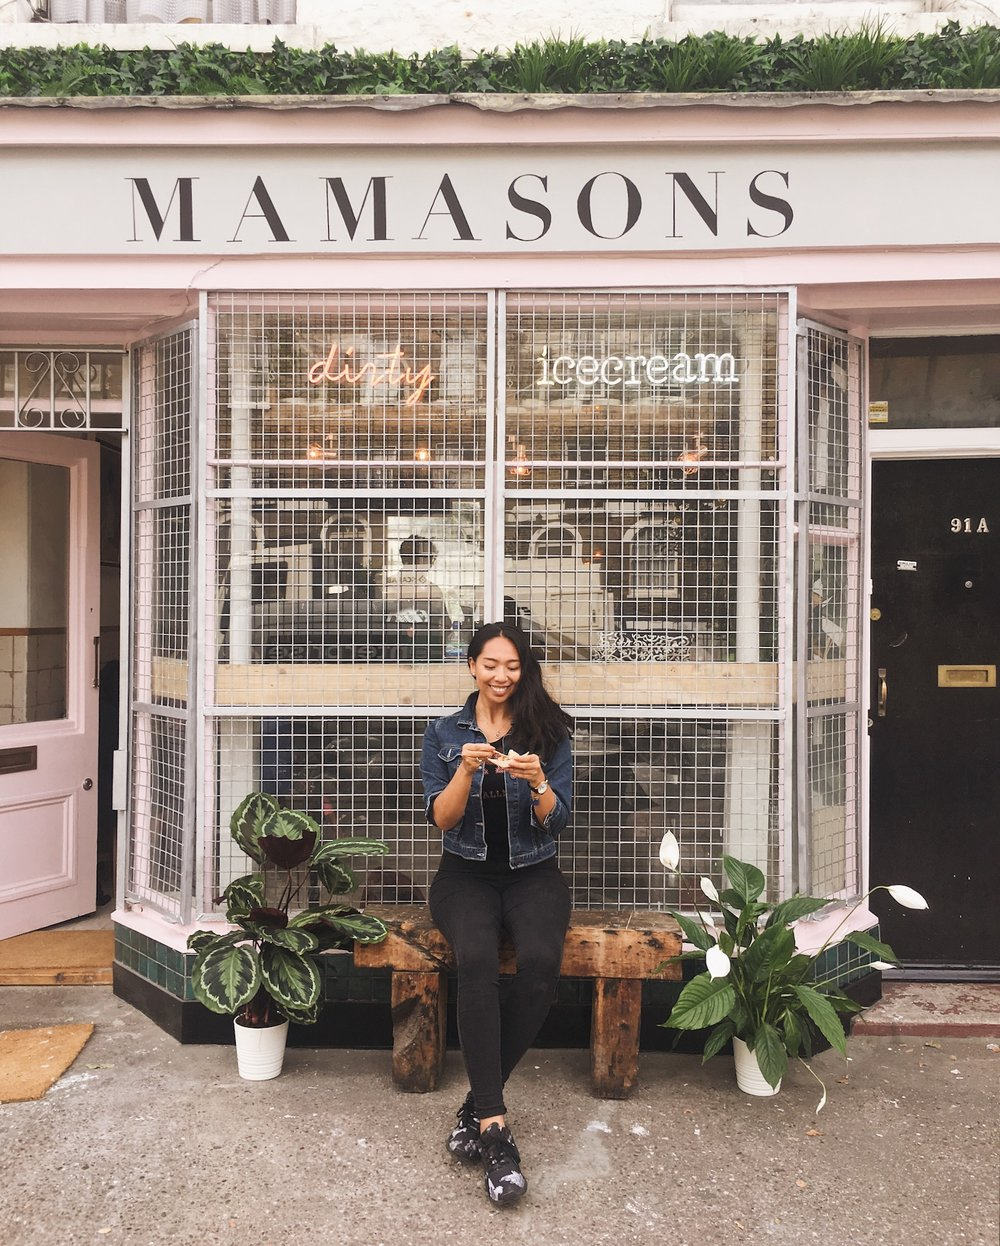 Mamasons Filipino Dirty Ice Cream in Camden/Kentish Town, London - illumelation.com